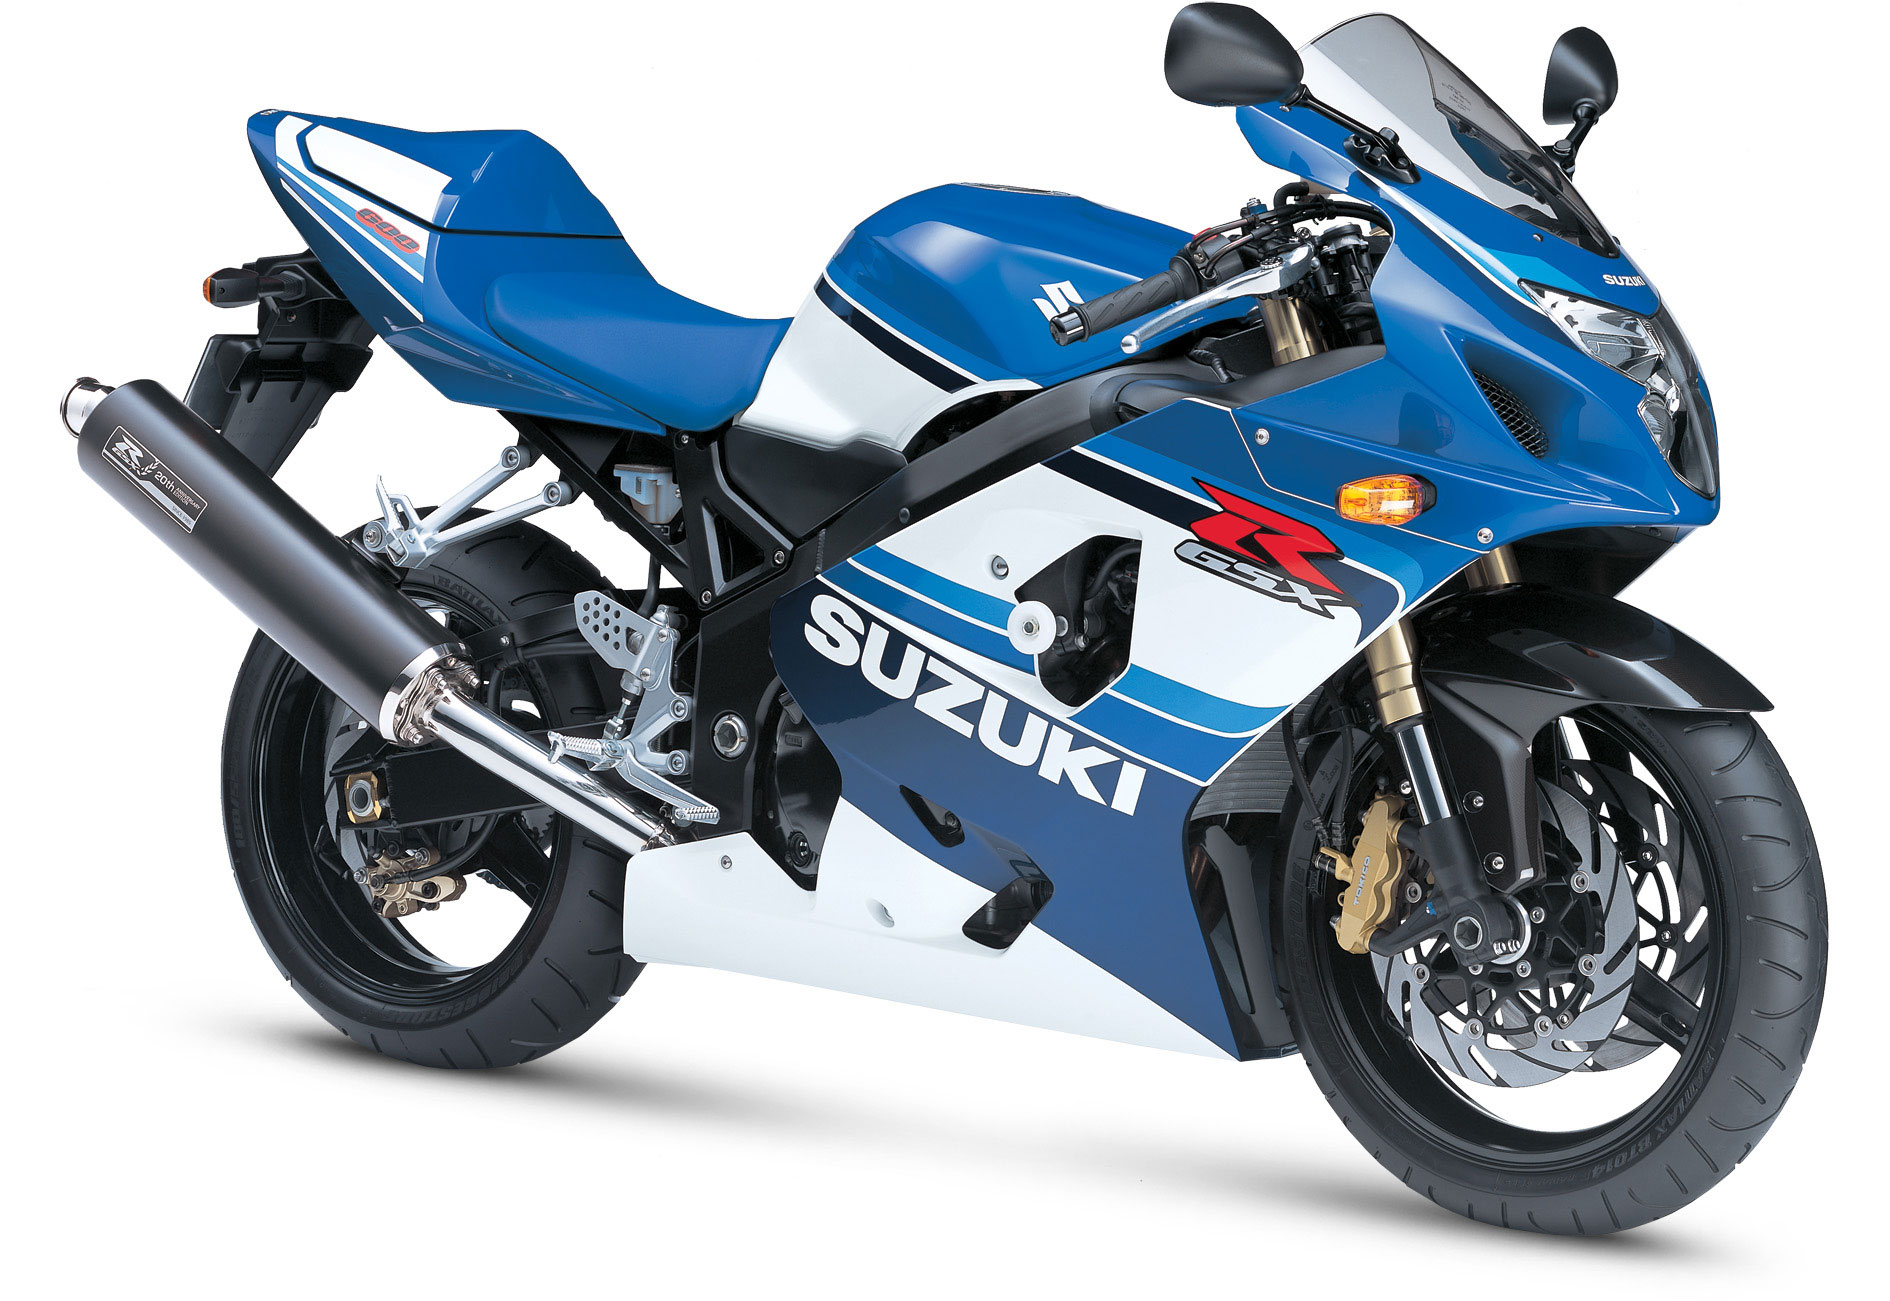 page 4 2004 to 2005 4th generation suzuki gsx r600 new look new updates. Black Bedroom Furniture Sets. Home Design Ideas